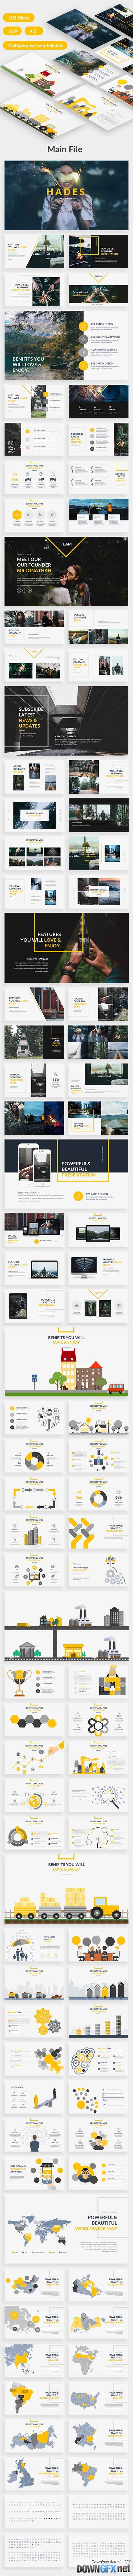 Hades Creative Powerpoint Template 20359395